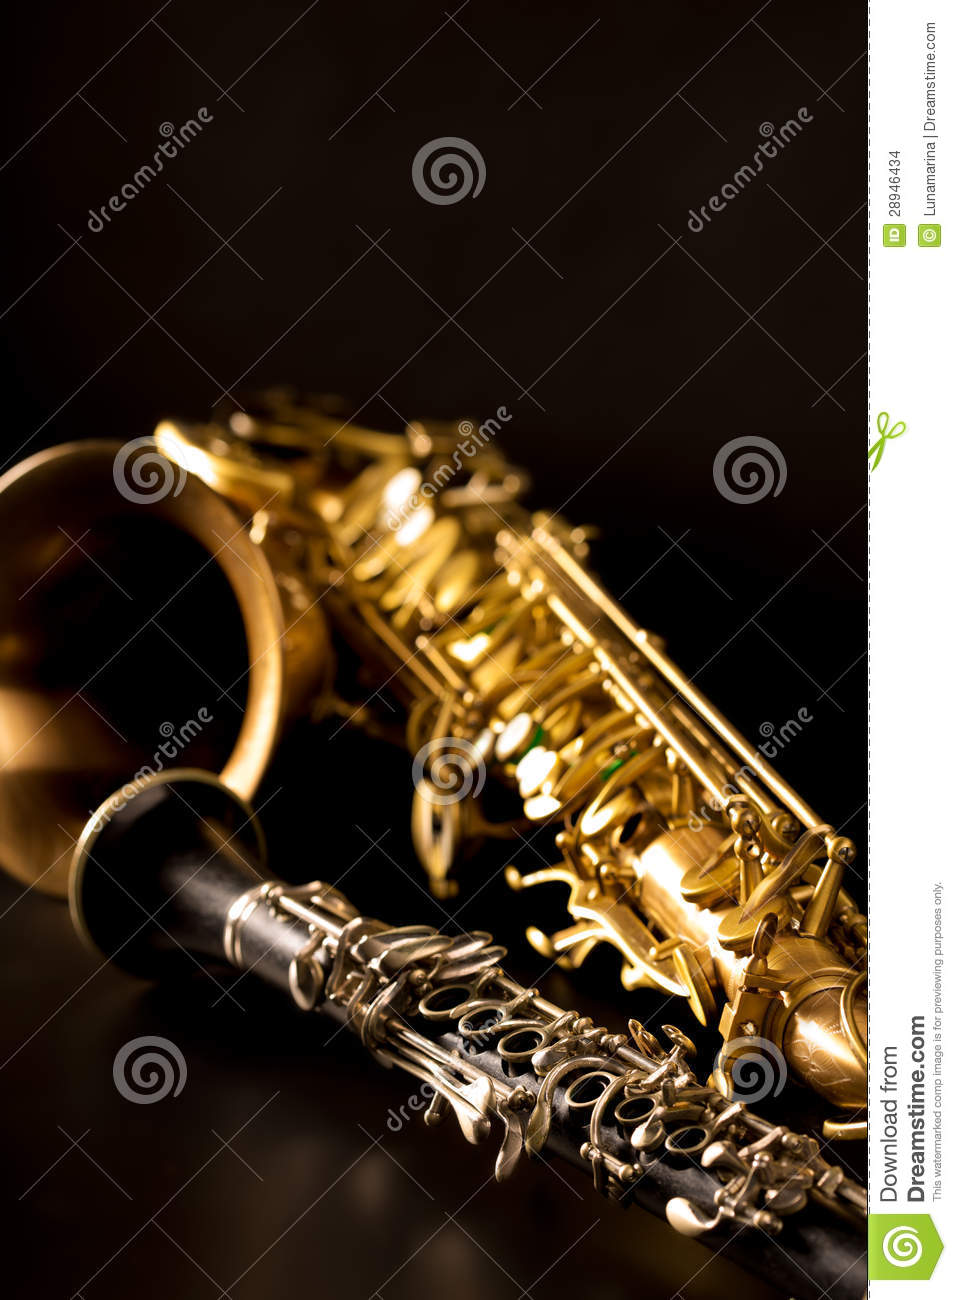 how to produce a smooth sound on saxophone